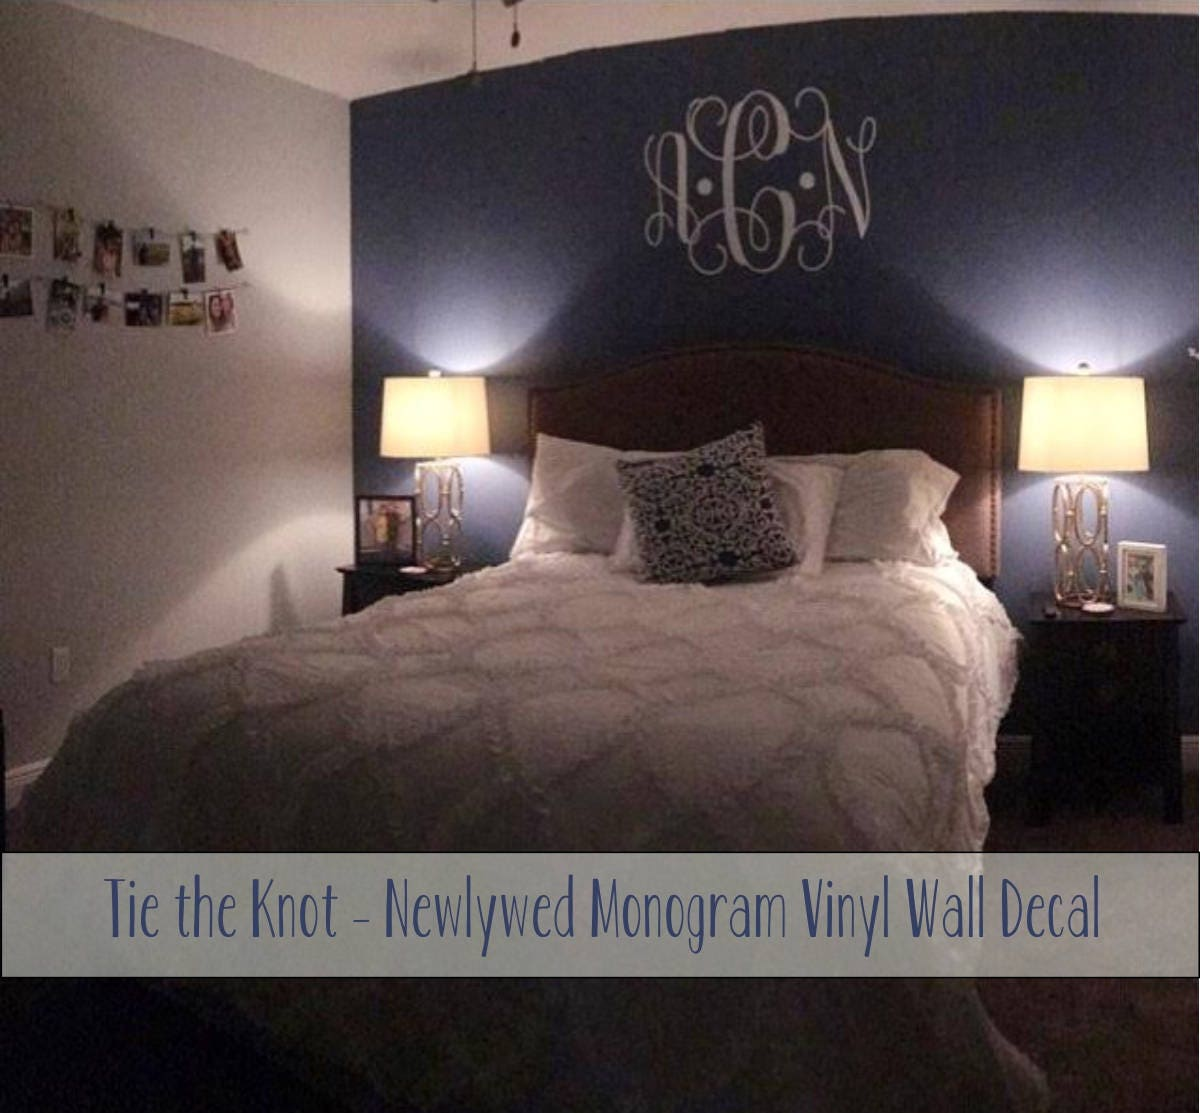 Vine Monogram Decal | Large Monogram Wall Decal | Master Bedroom Wall Decal | Wedding Monogram | Newlywed Monogram Wall Decal : large monogram wall decal - www.pureclipart.com